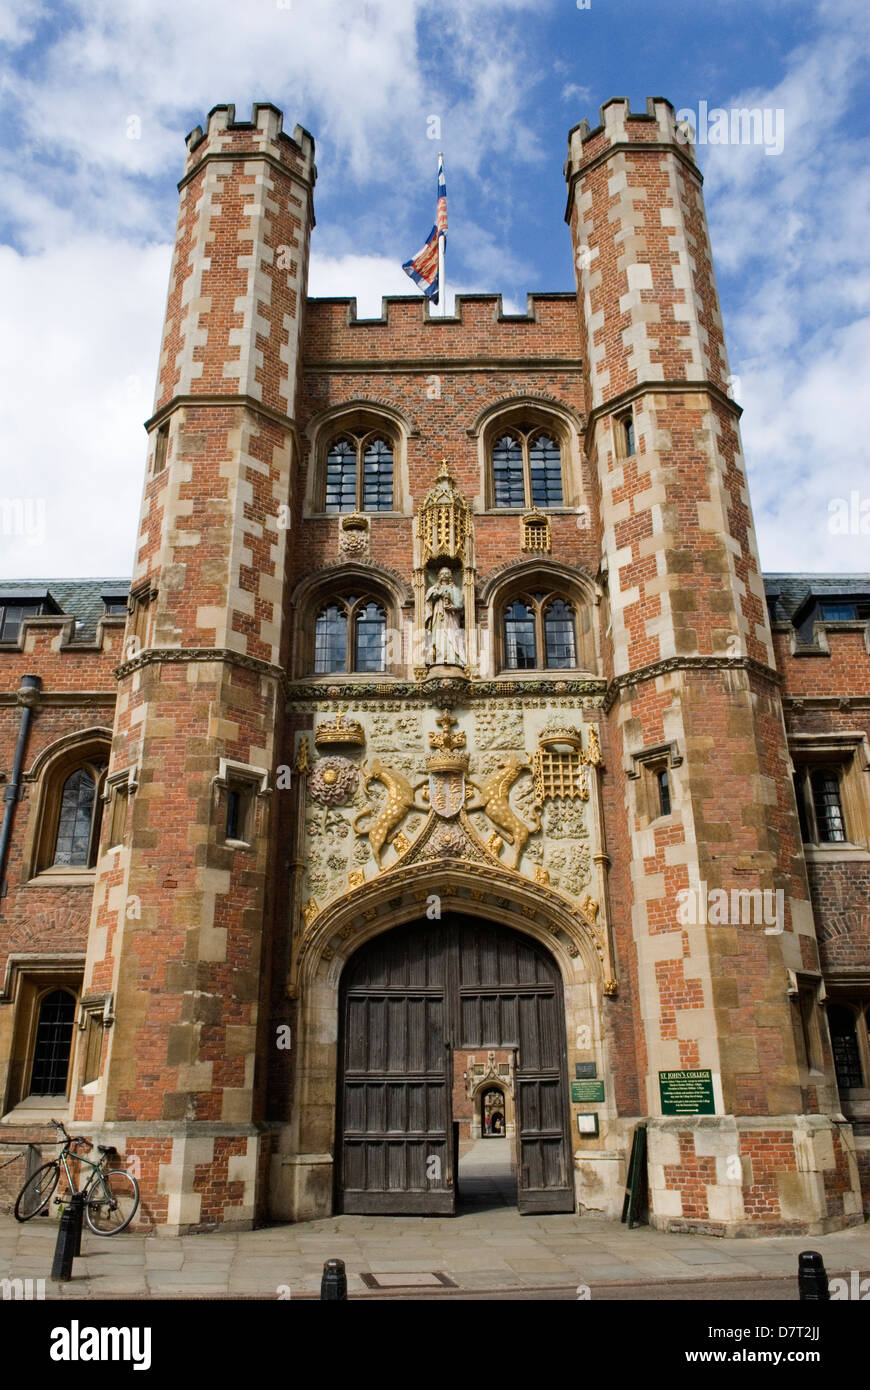 Cambridge University UK St Johns College Great Gate entrance HOMER SYKES Stock Photo